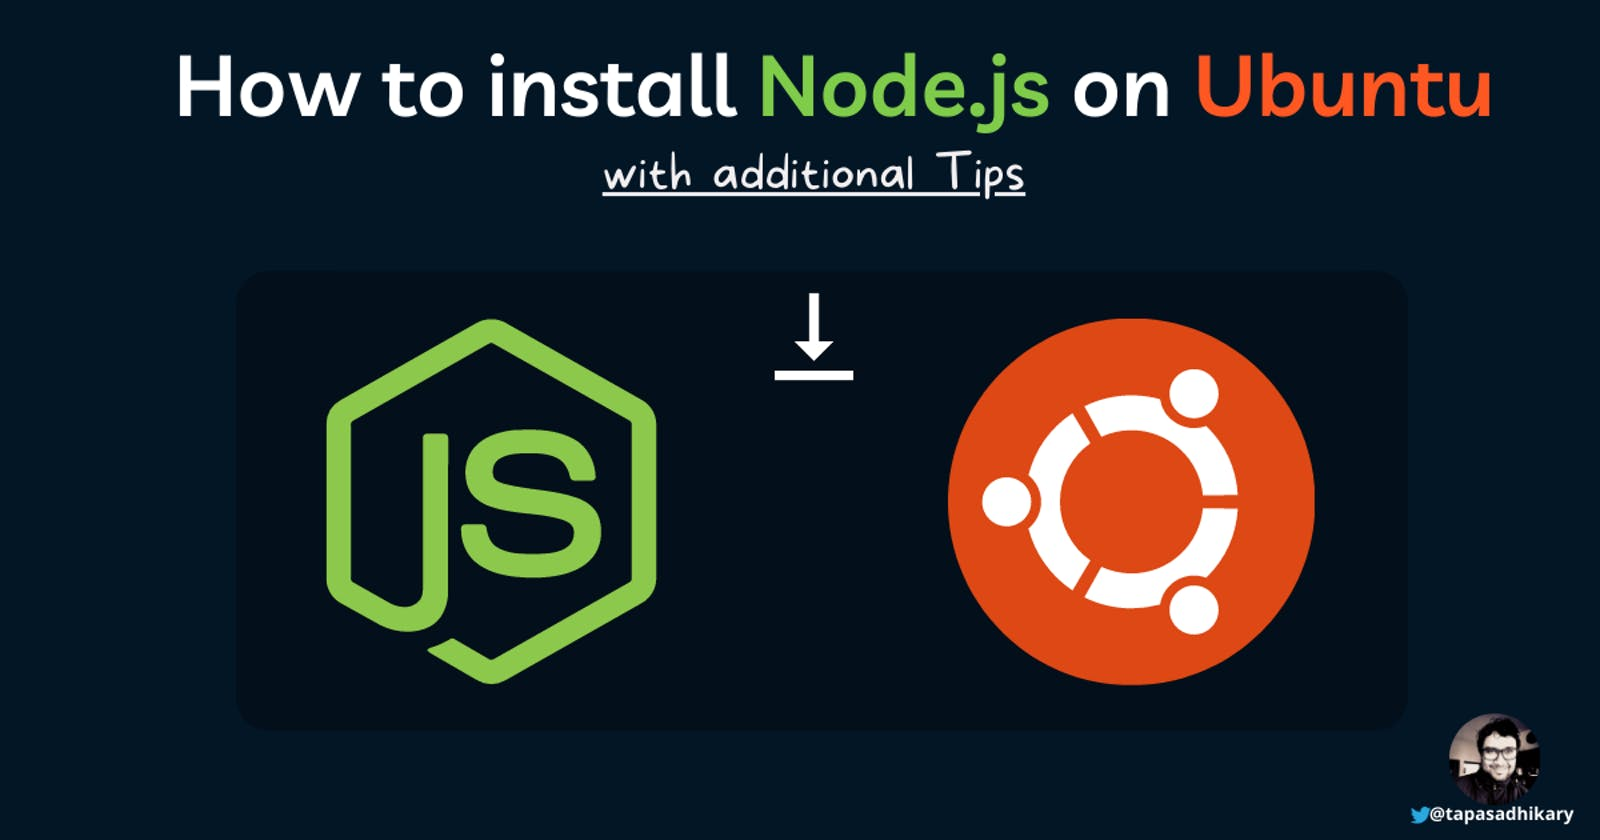 How to install, manage Node.js on Ubuntu and additional tips